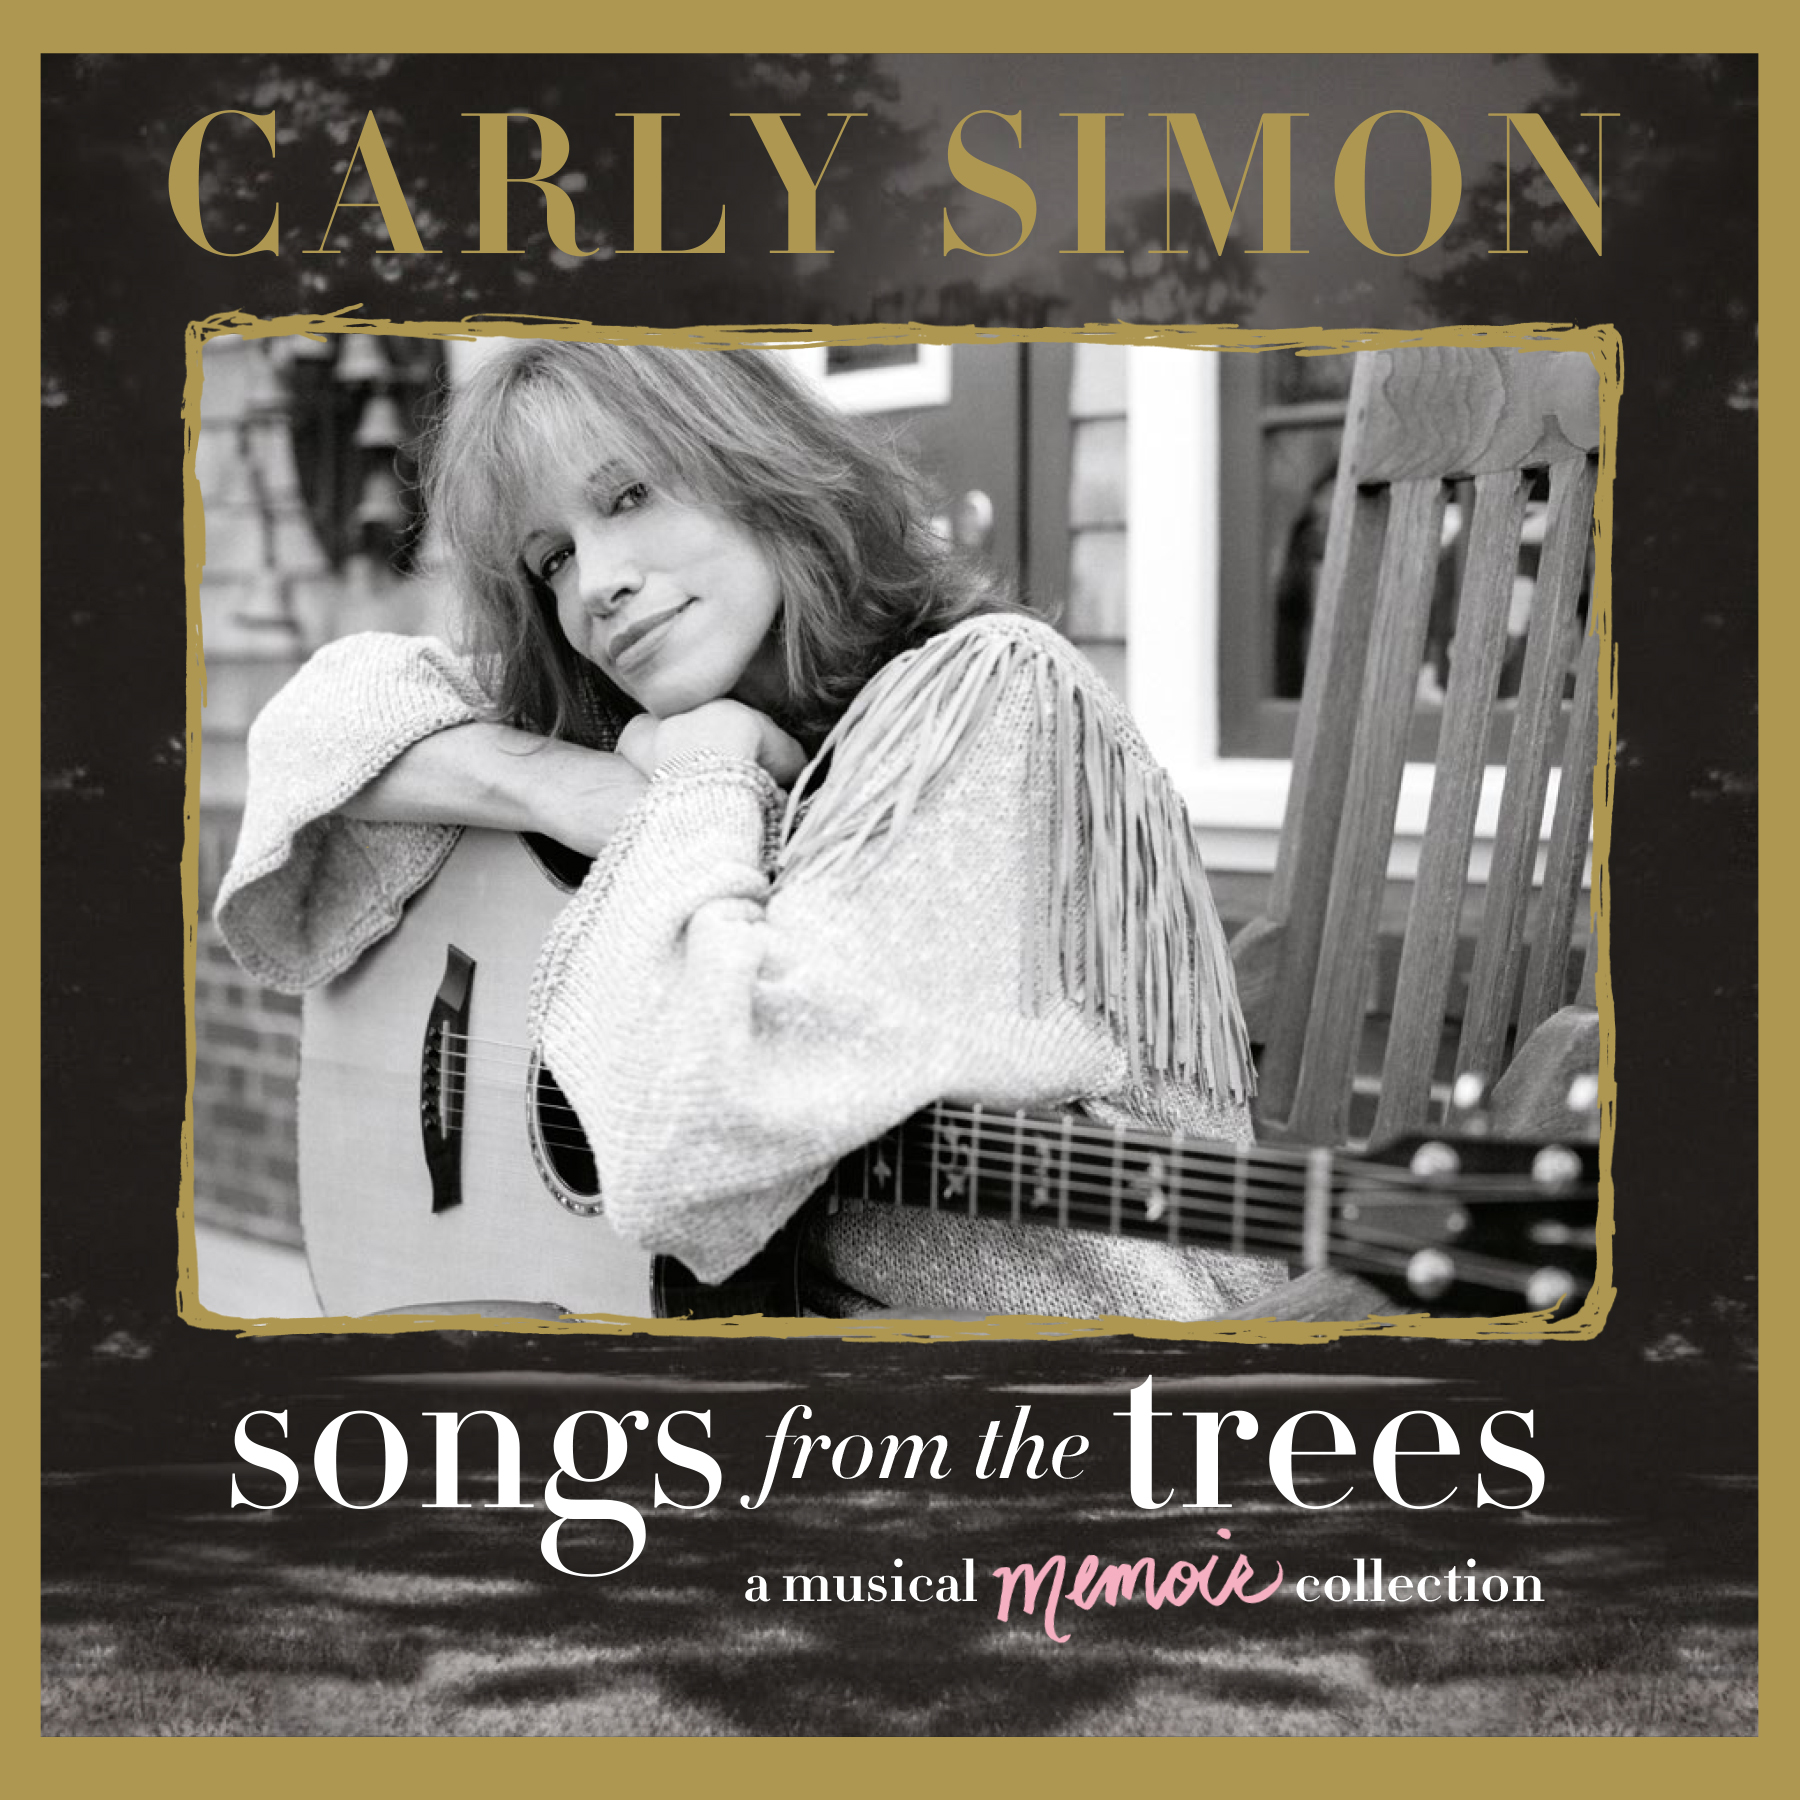 Carly%20Simon%20Songs%20From%20The%20Trees%20Cover.jpg